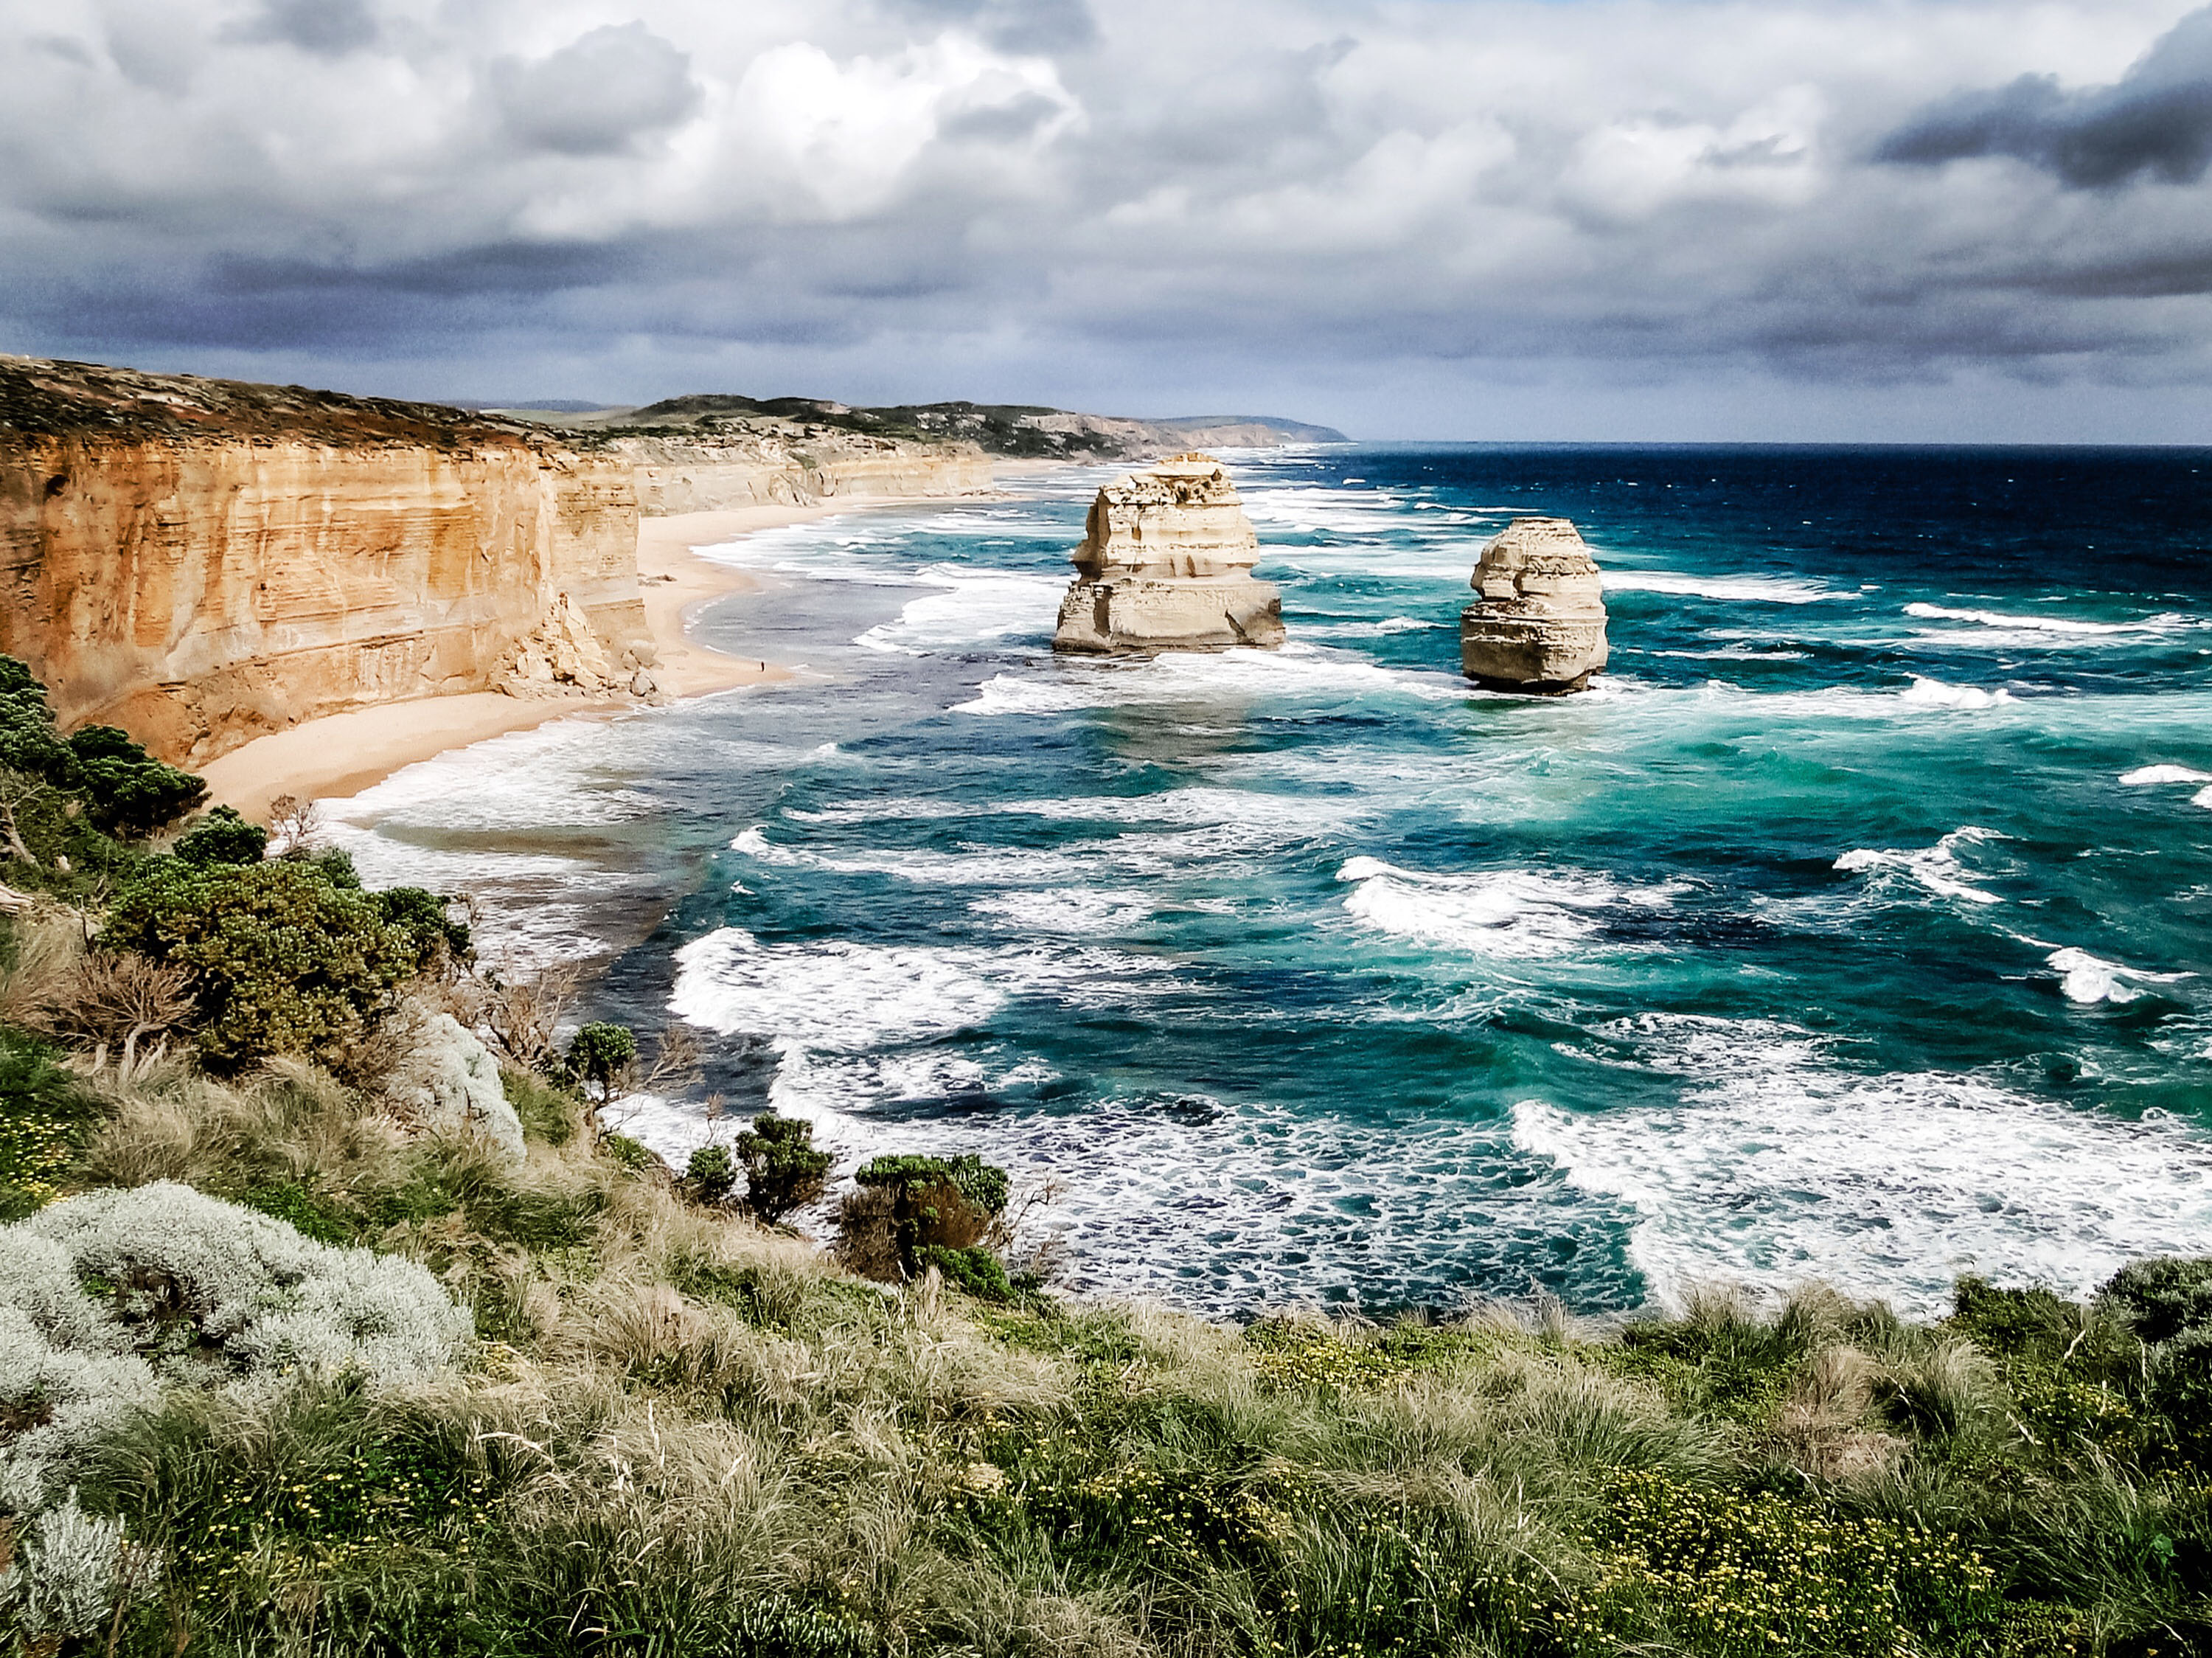 Two of twelve apostles, Great Ocean Road - Australia